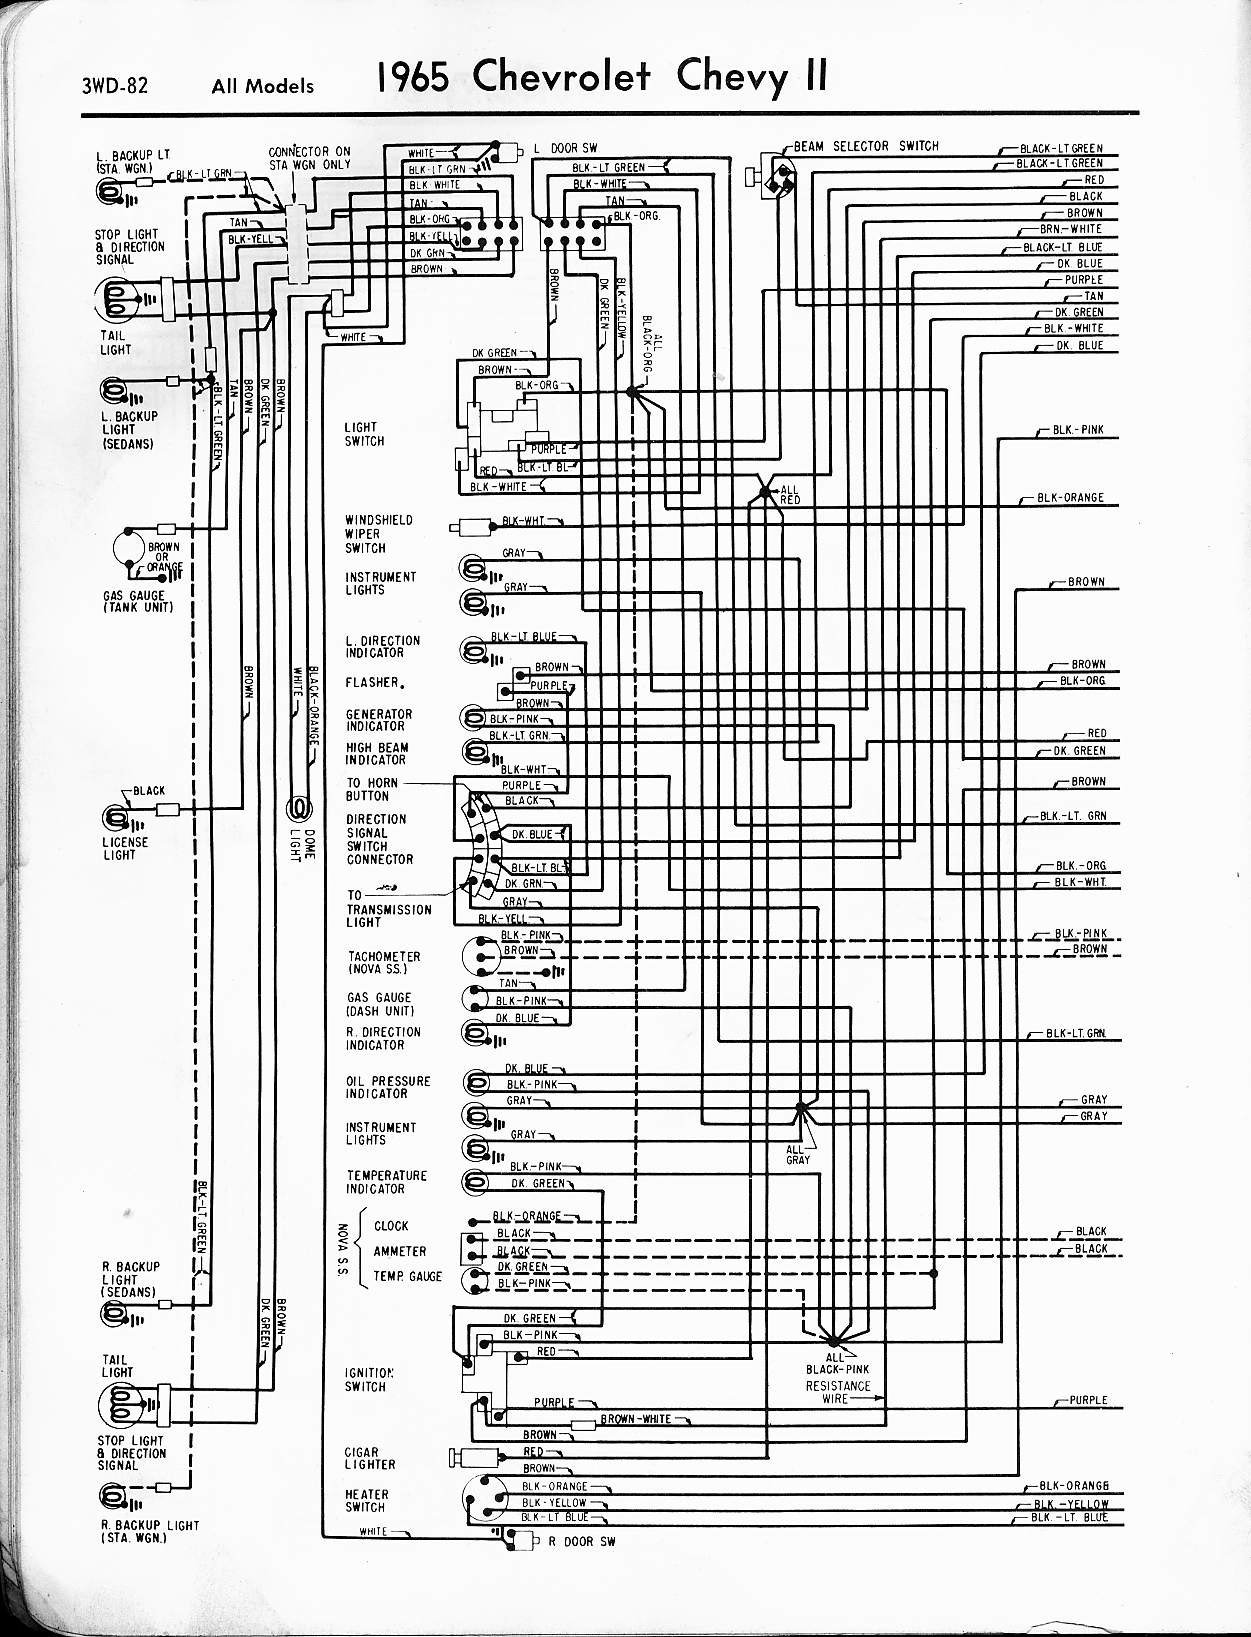 Electrical Wiring Diagram 1965 Chevy C10 Online Manuual Of Painless Fuse Box Layout Chevrolet Todays Rh 18 10 7 1813weddingbarn Com